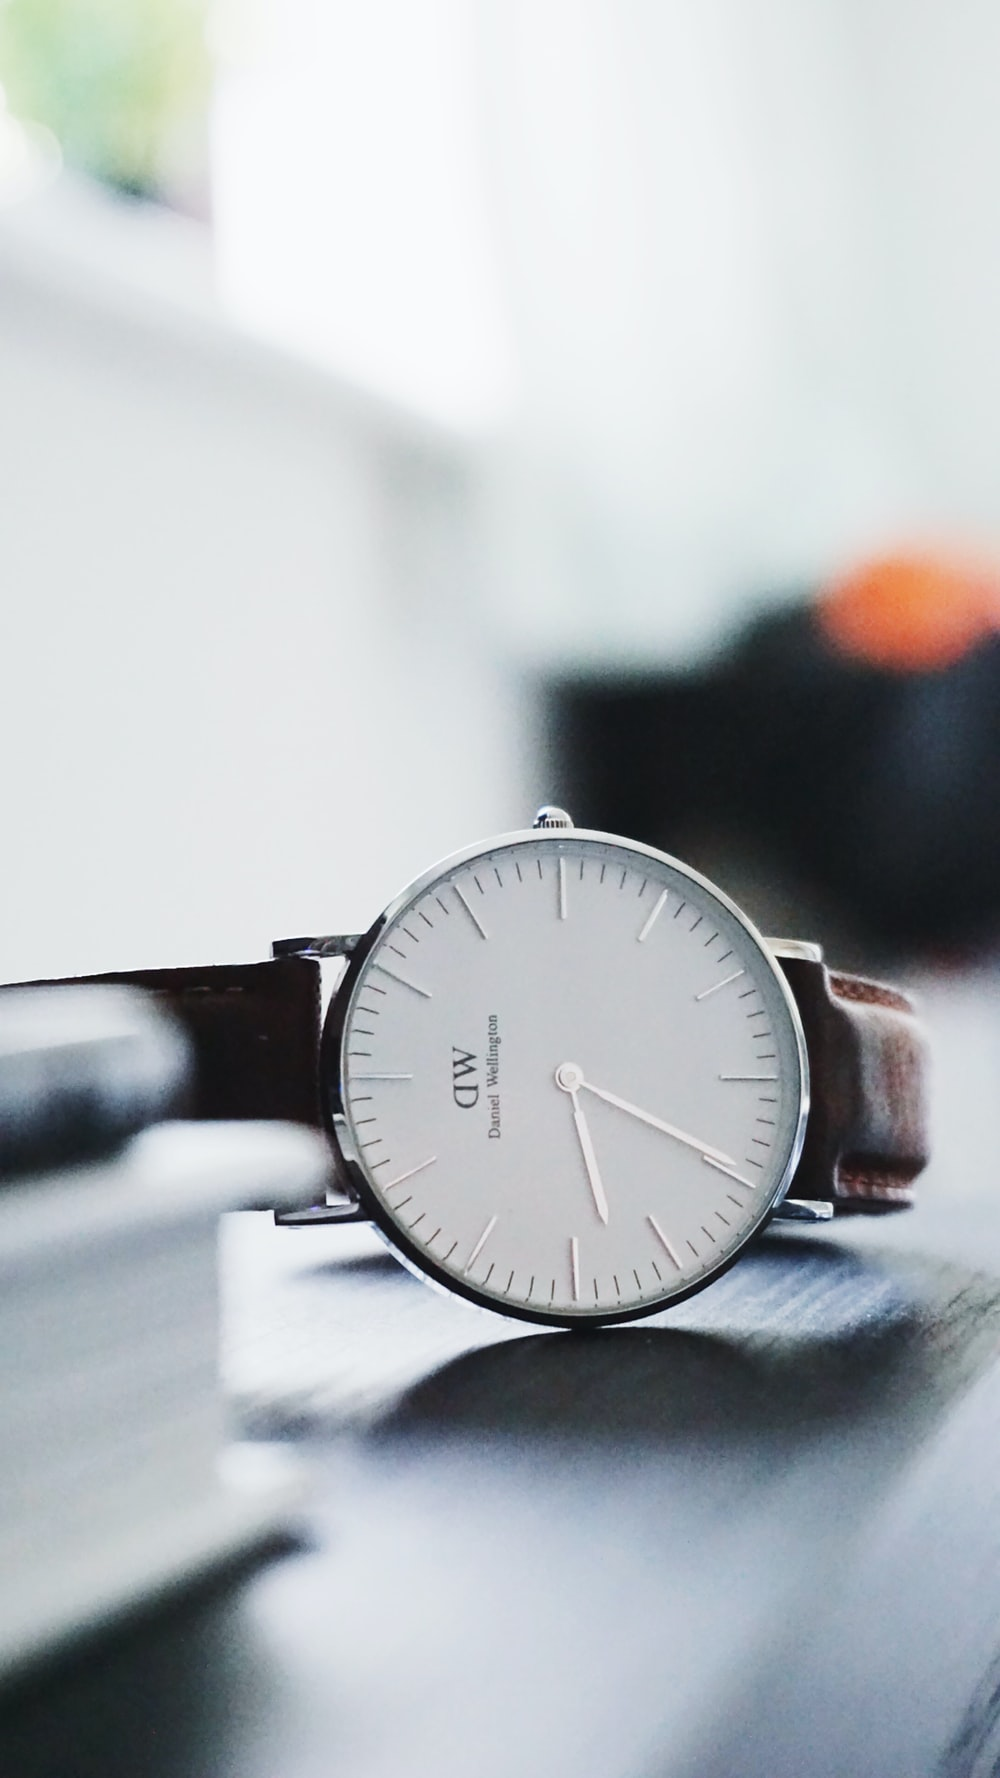 round silver-colored DW analog watch at 6:38